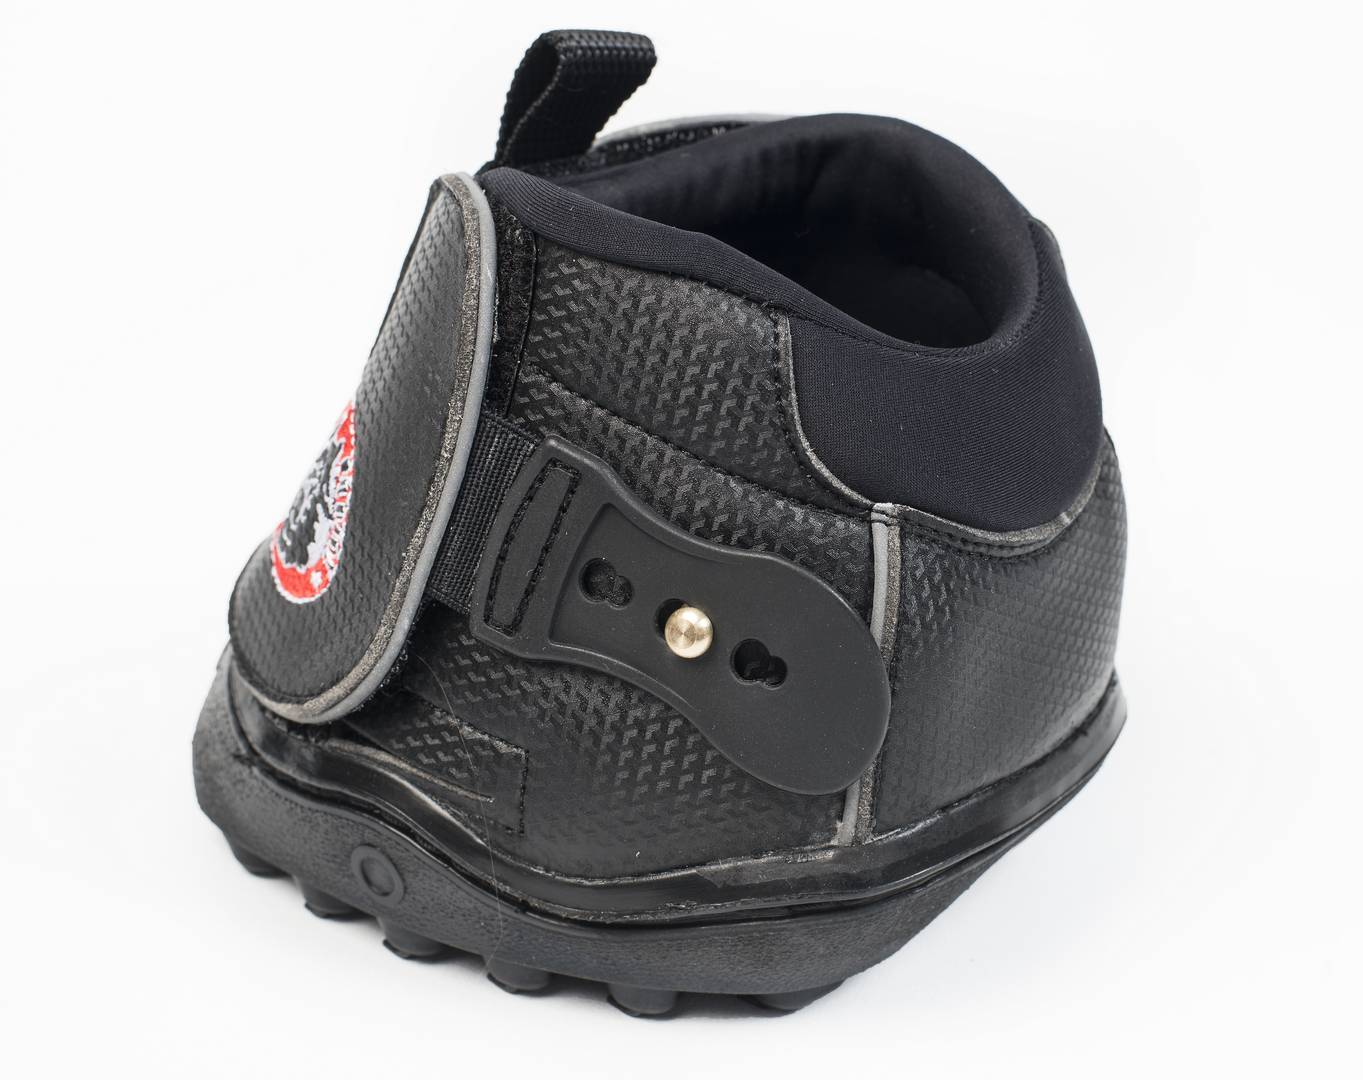 Equine Fusion Active Jogging Hufschuh